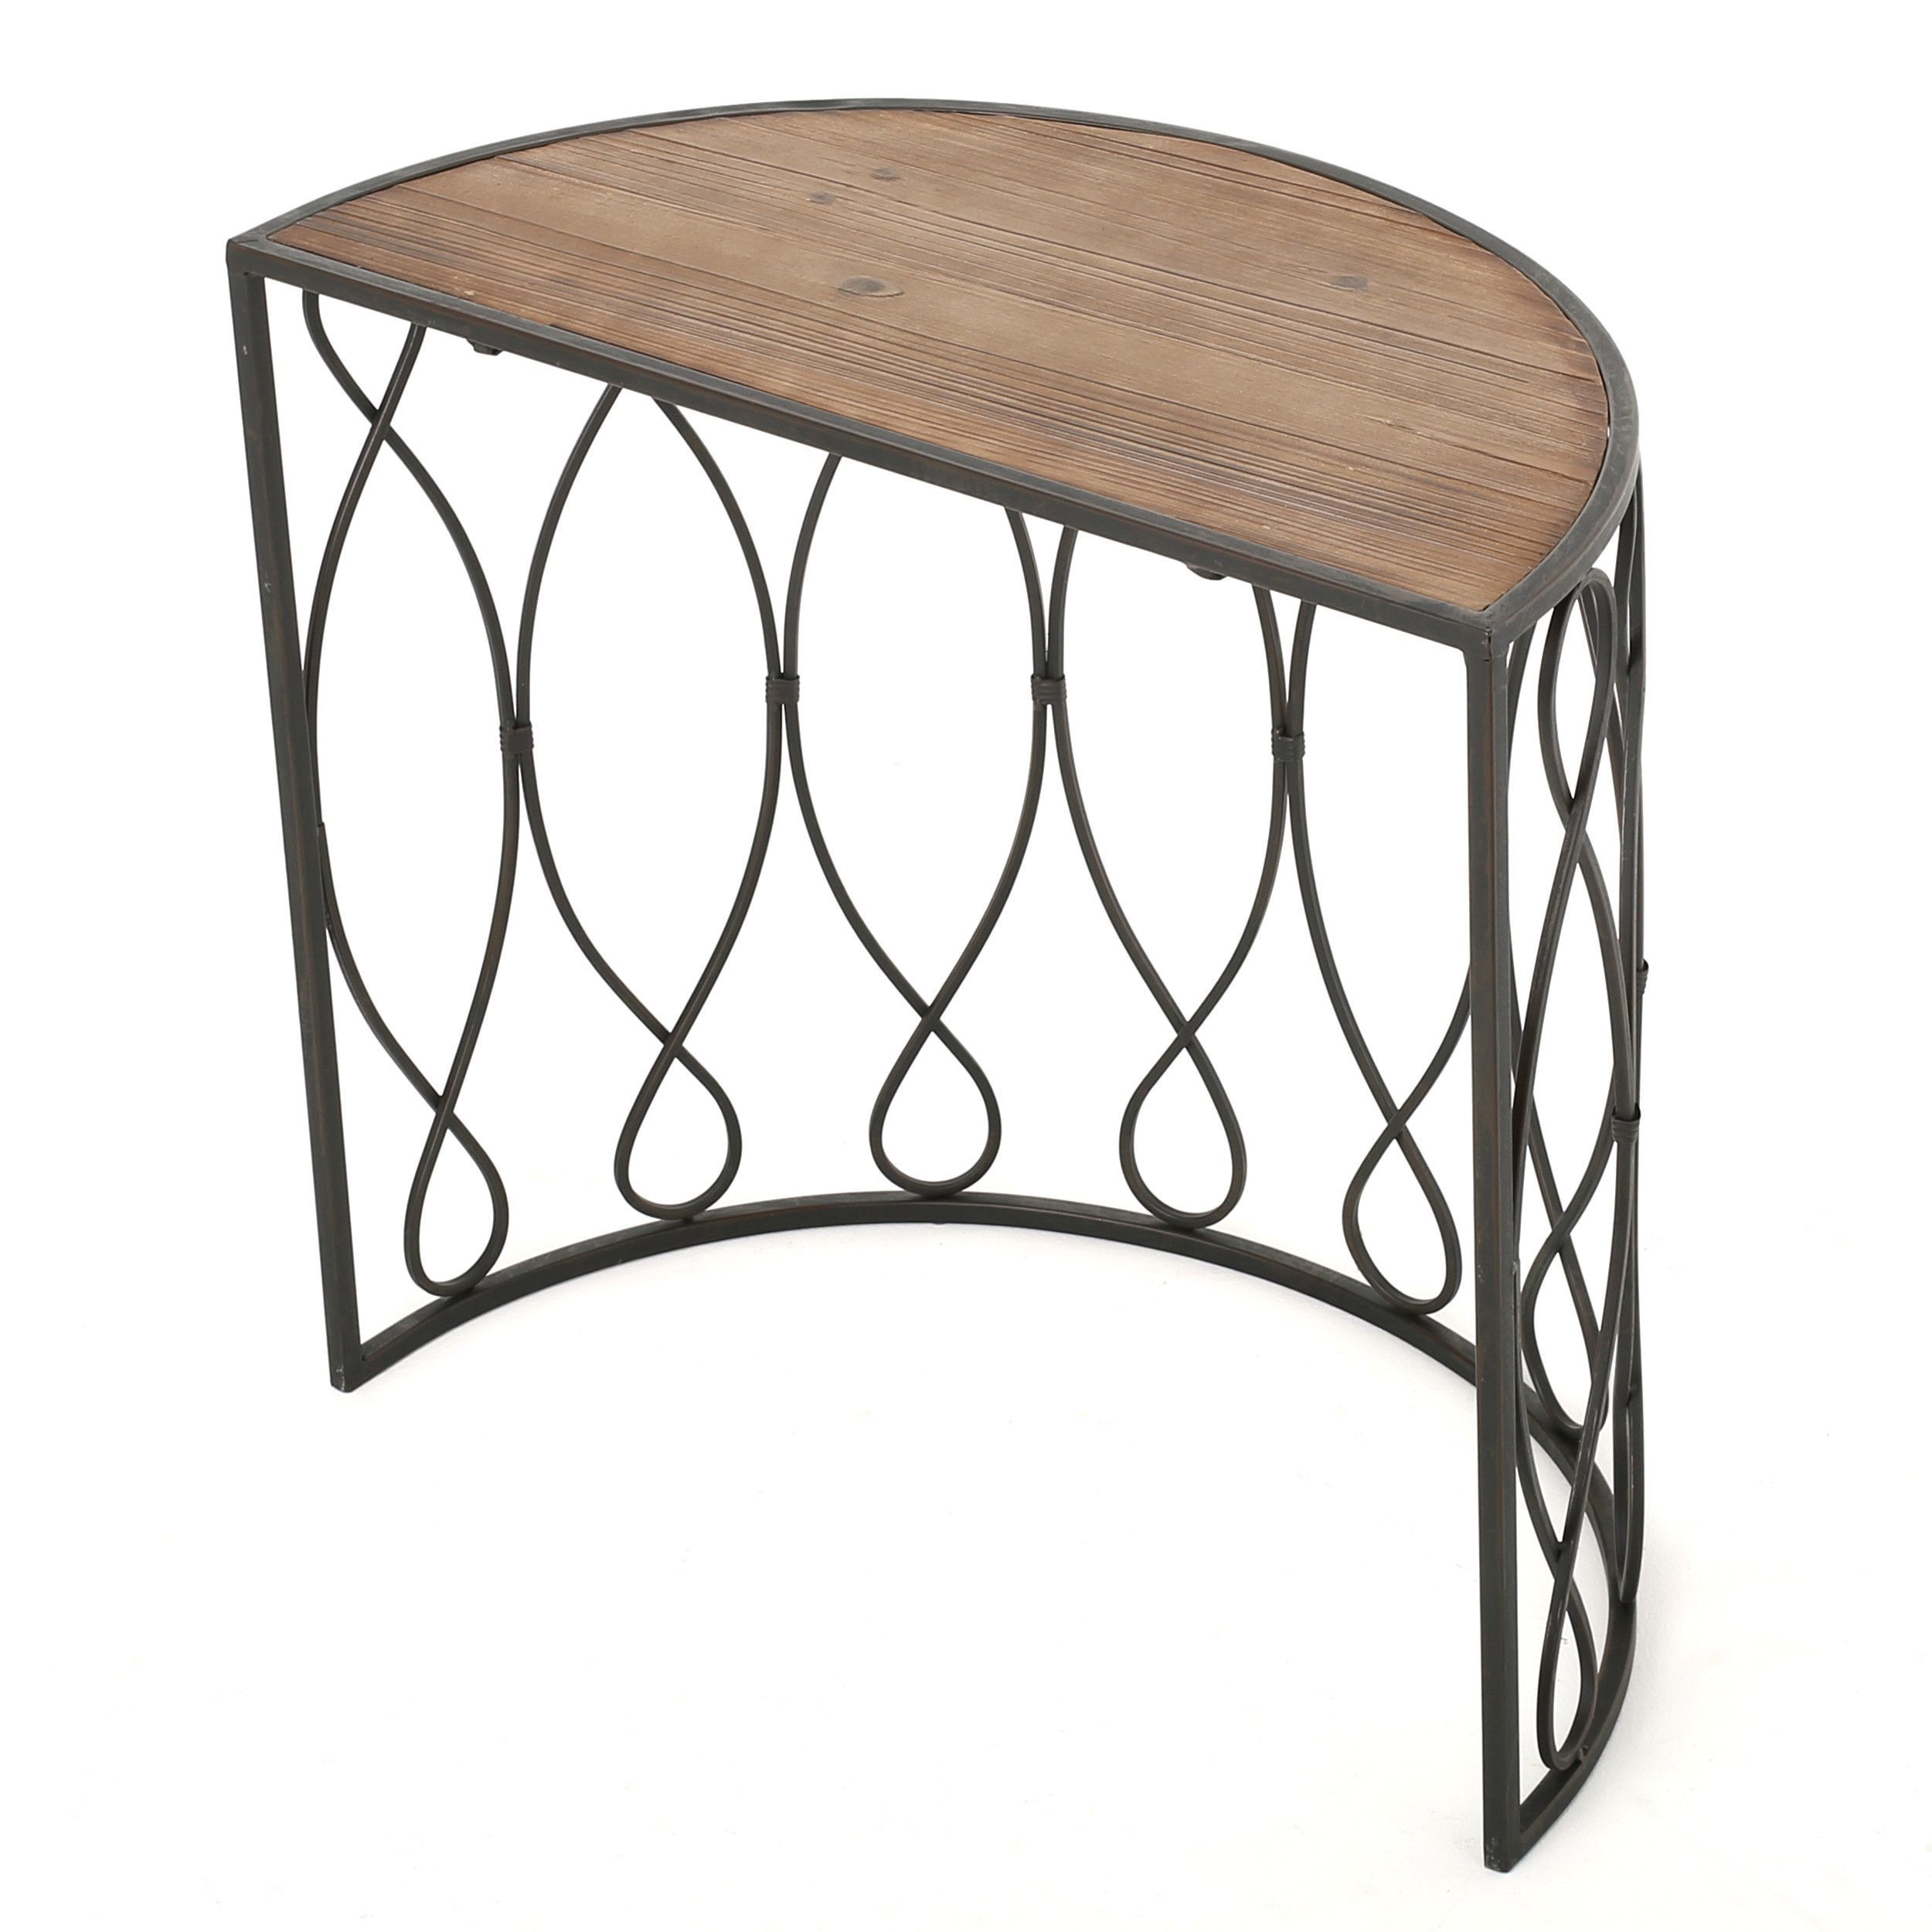 marbella small rustic accent table products contemporary metal side tables oval lucite coffee cabinets with glass doors oversized living room chair ashley furniture sofa antique